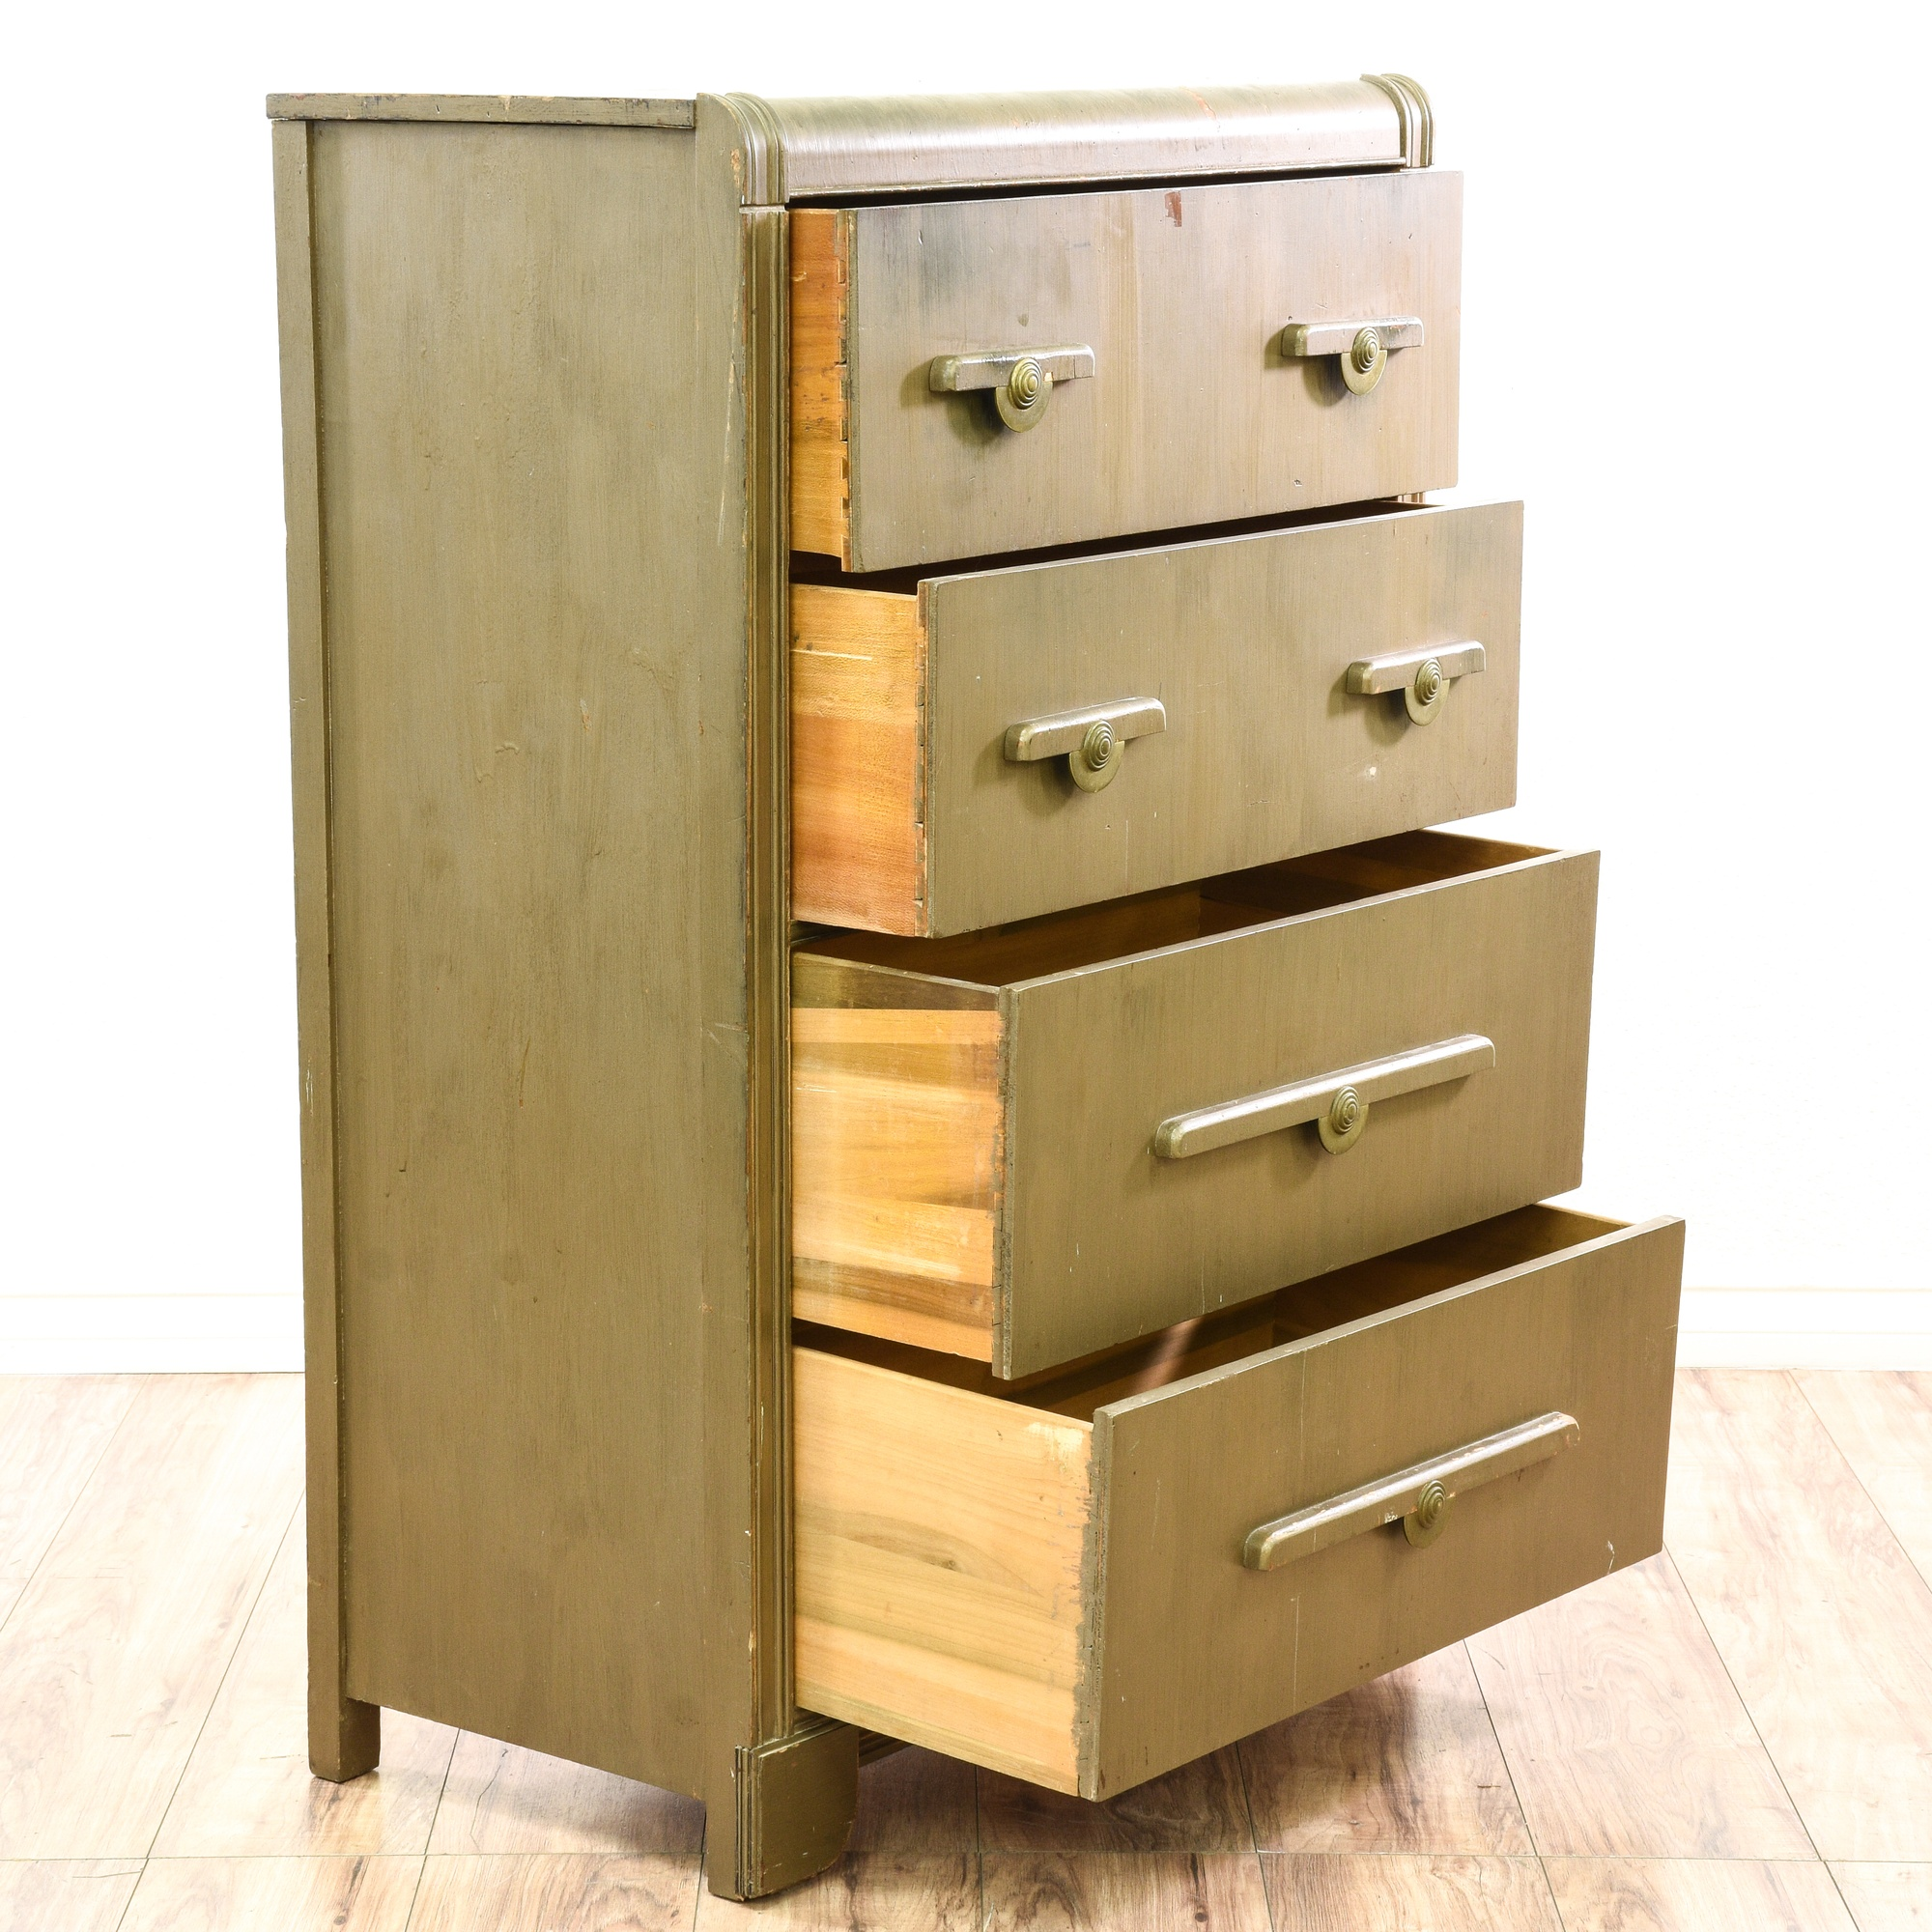 Forsyth Art Deco Kitchen Interior Design San Diego: Art Deco Green Stained Chest Of Drawers Dresser